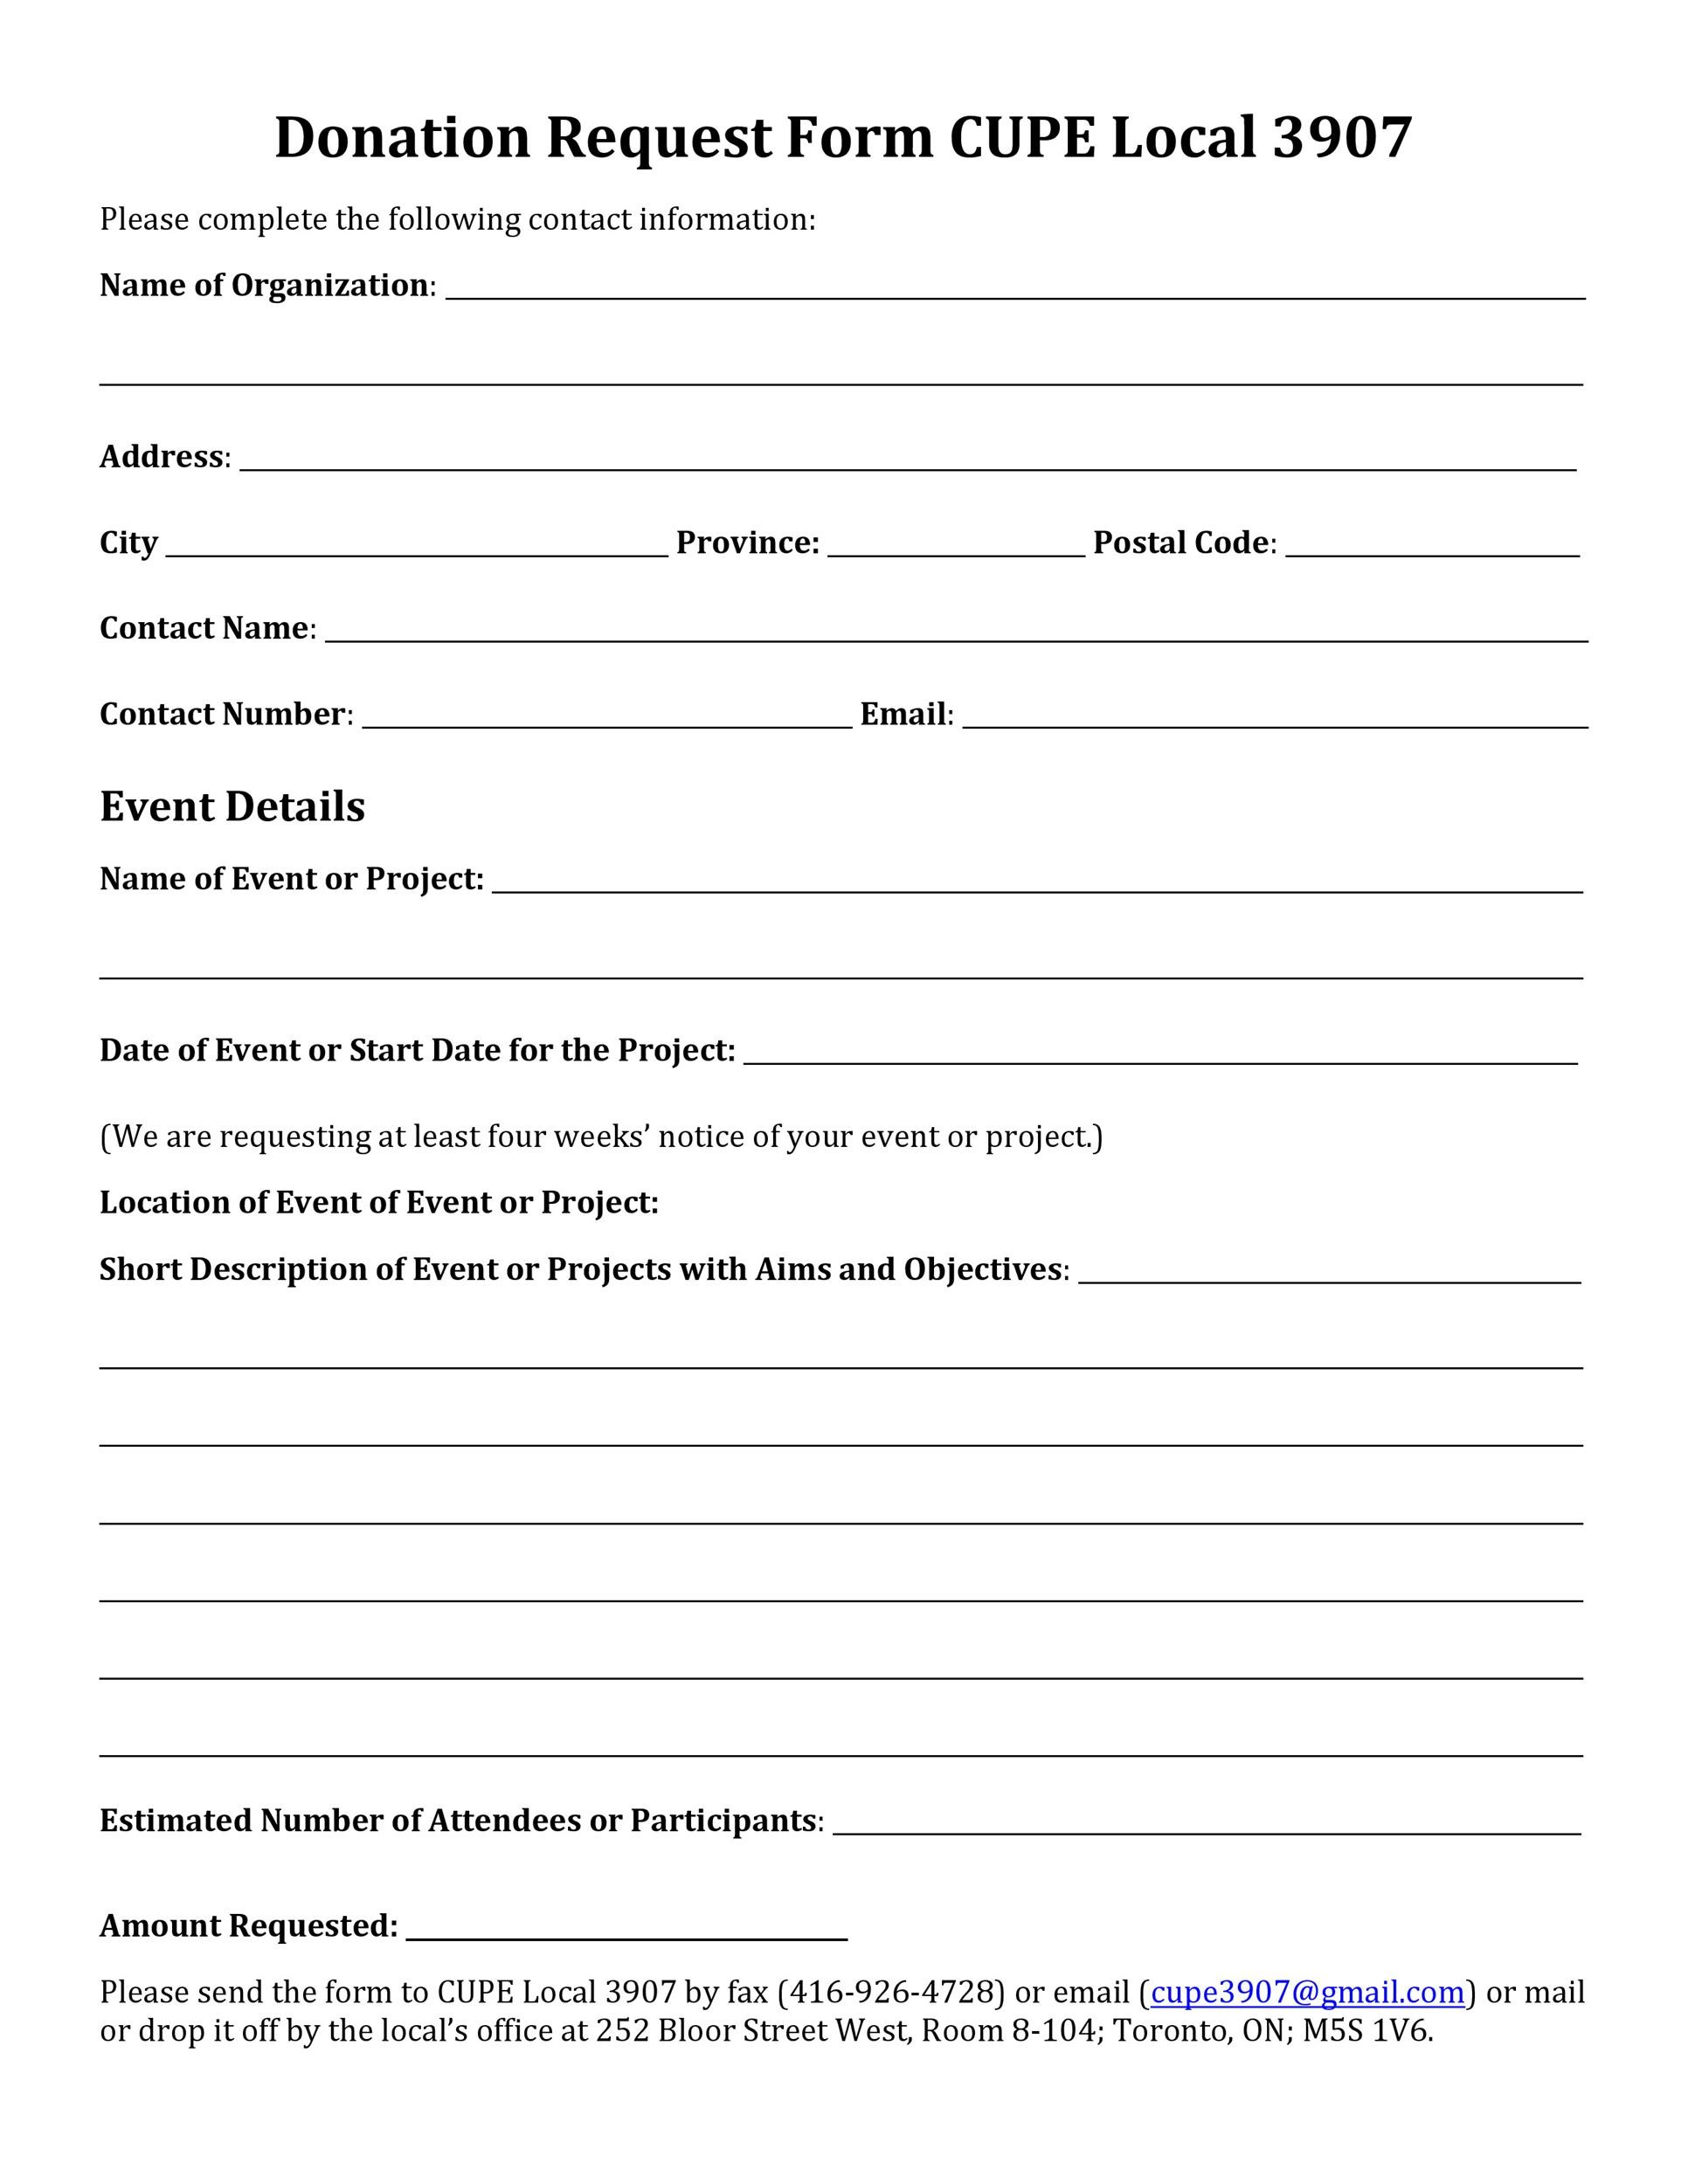 43 FREE Donation Request Letters & Forms - Template Lab